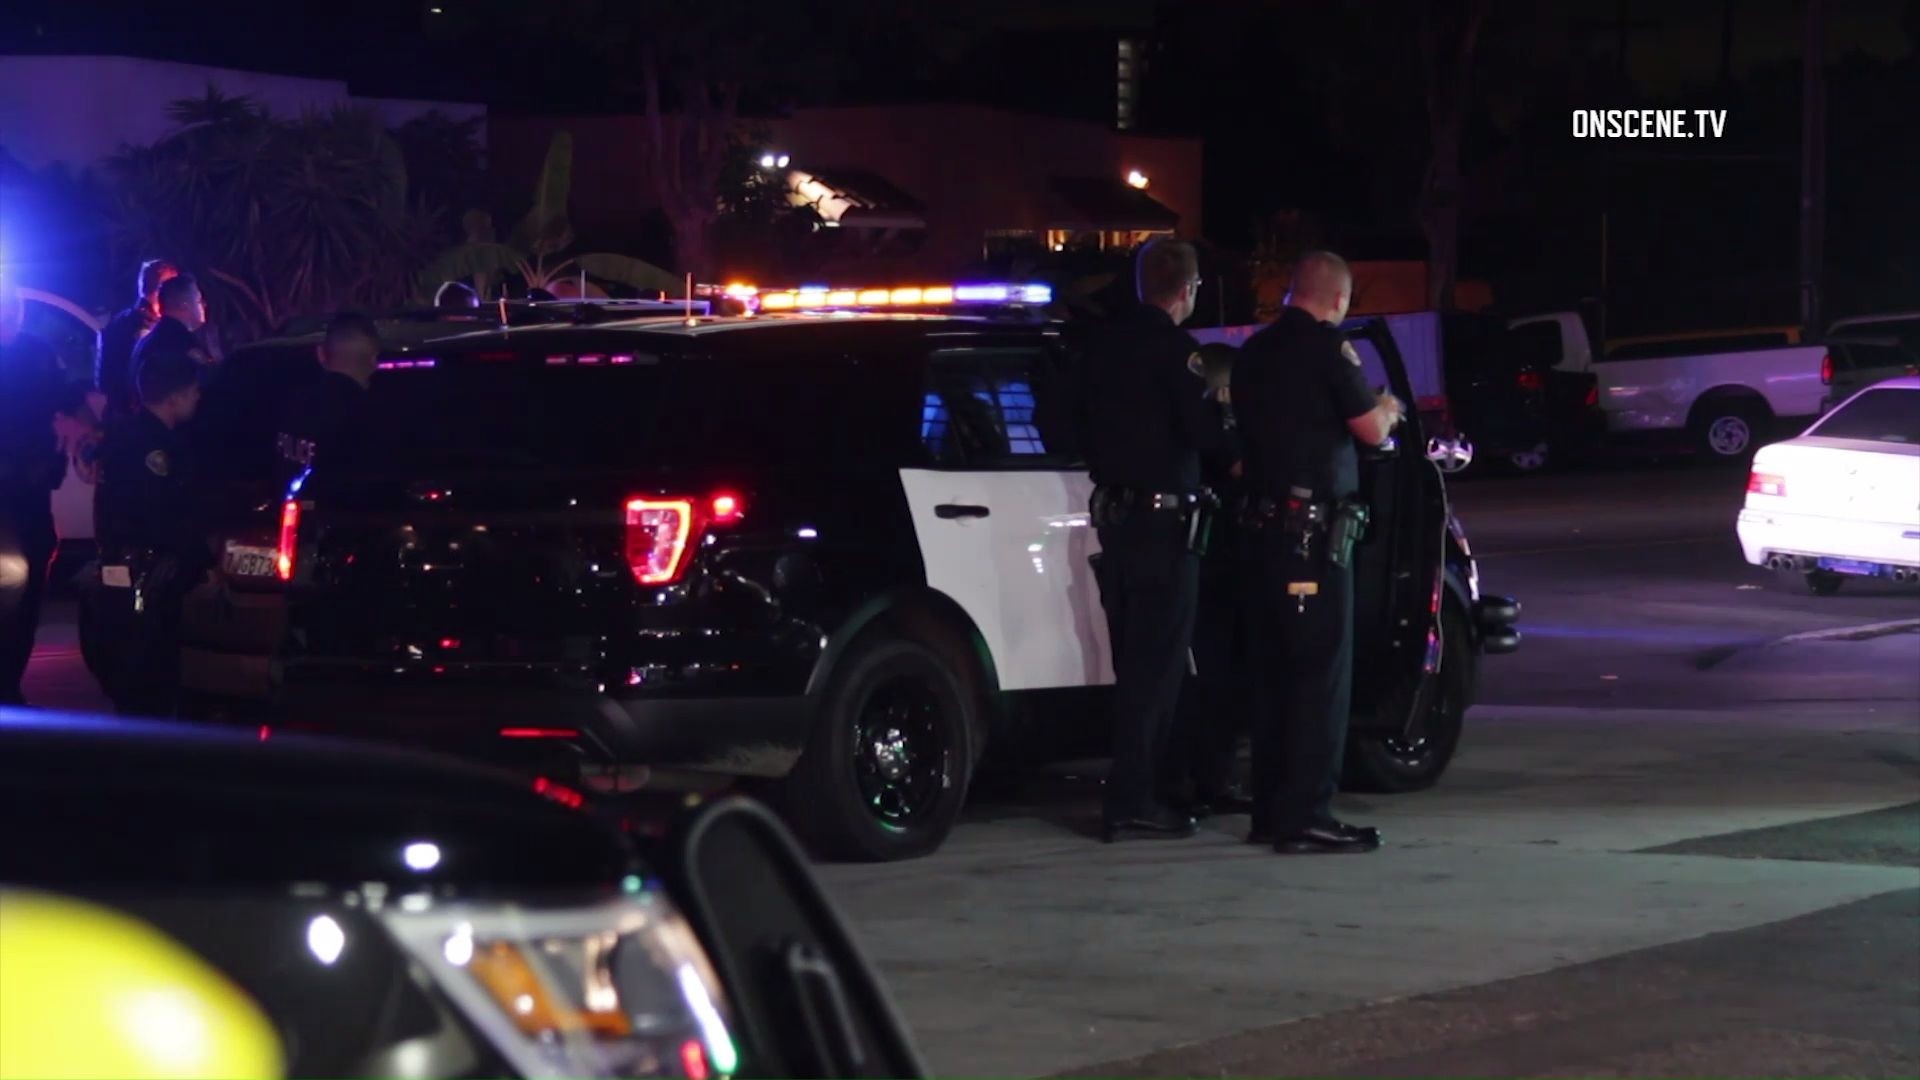 Carjacking suspect shot with rubber bullets after chase in Long Beach